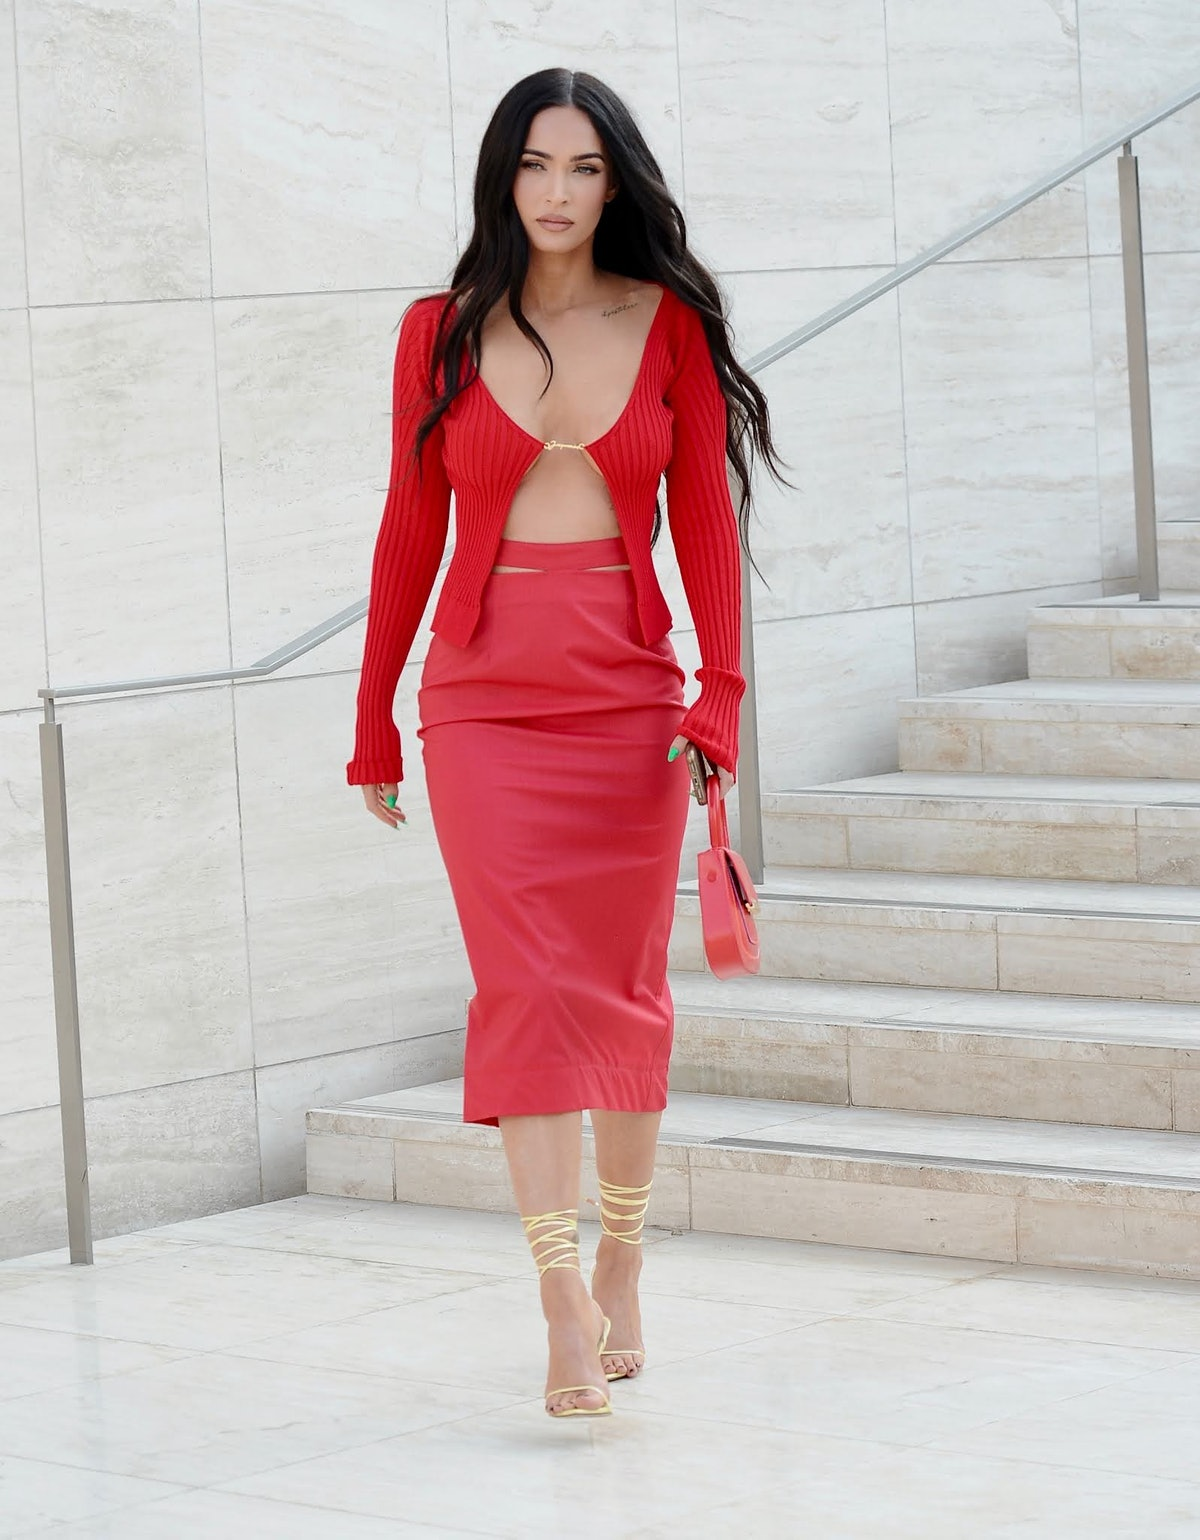 Megan Fox wears Jacquemus cardigan with a red skirt and gold strappy heels.